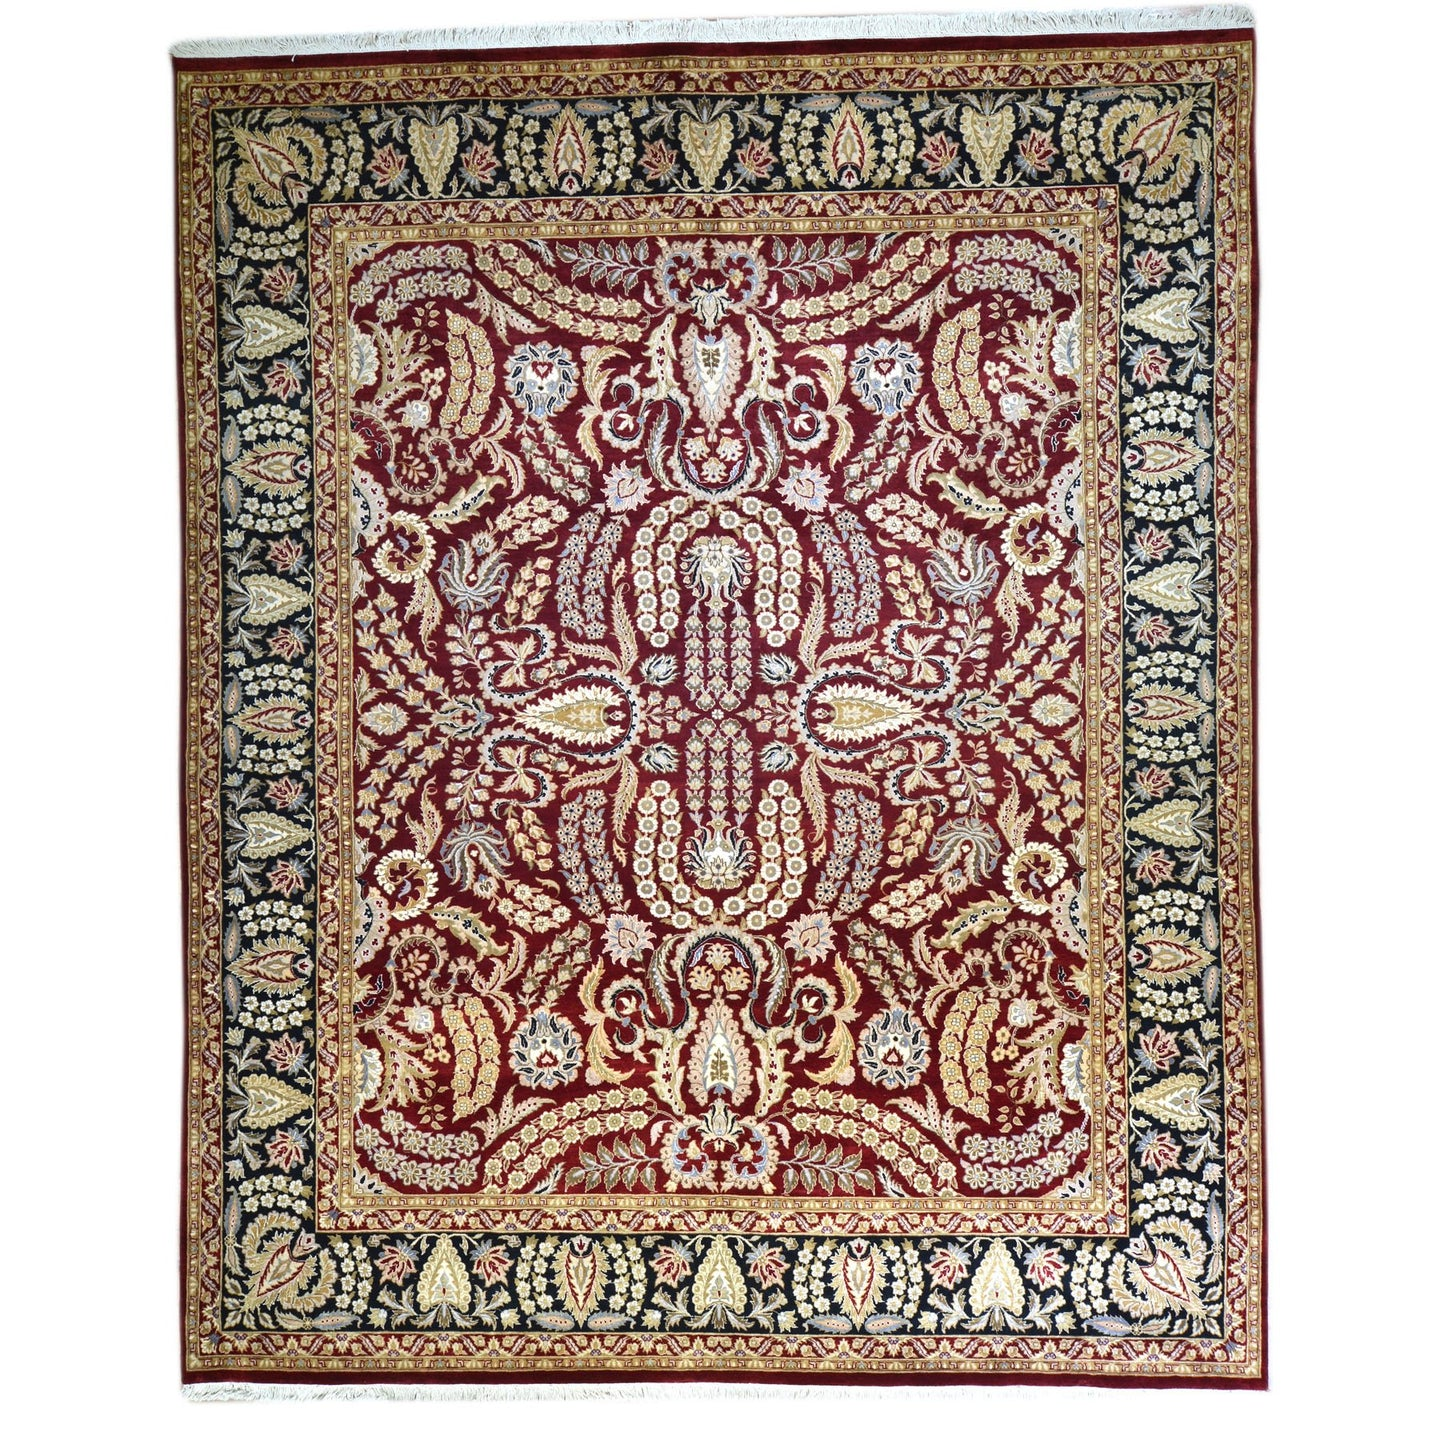 Oriental rugs, hand-knotted carpets, sustainable rugs, classic world oriental rugs, handmade, United States, interior design,  Brral-1083